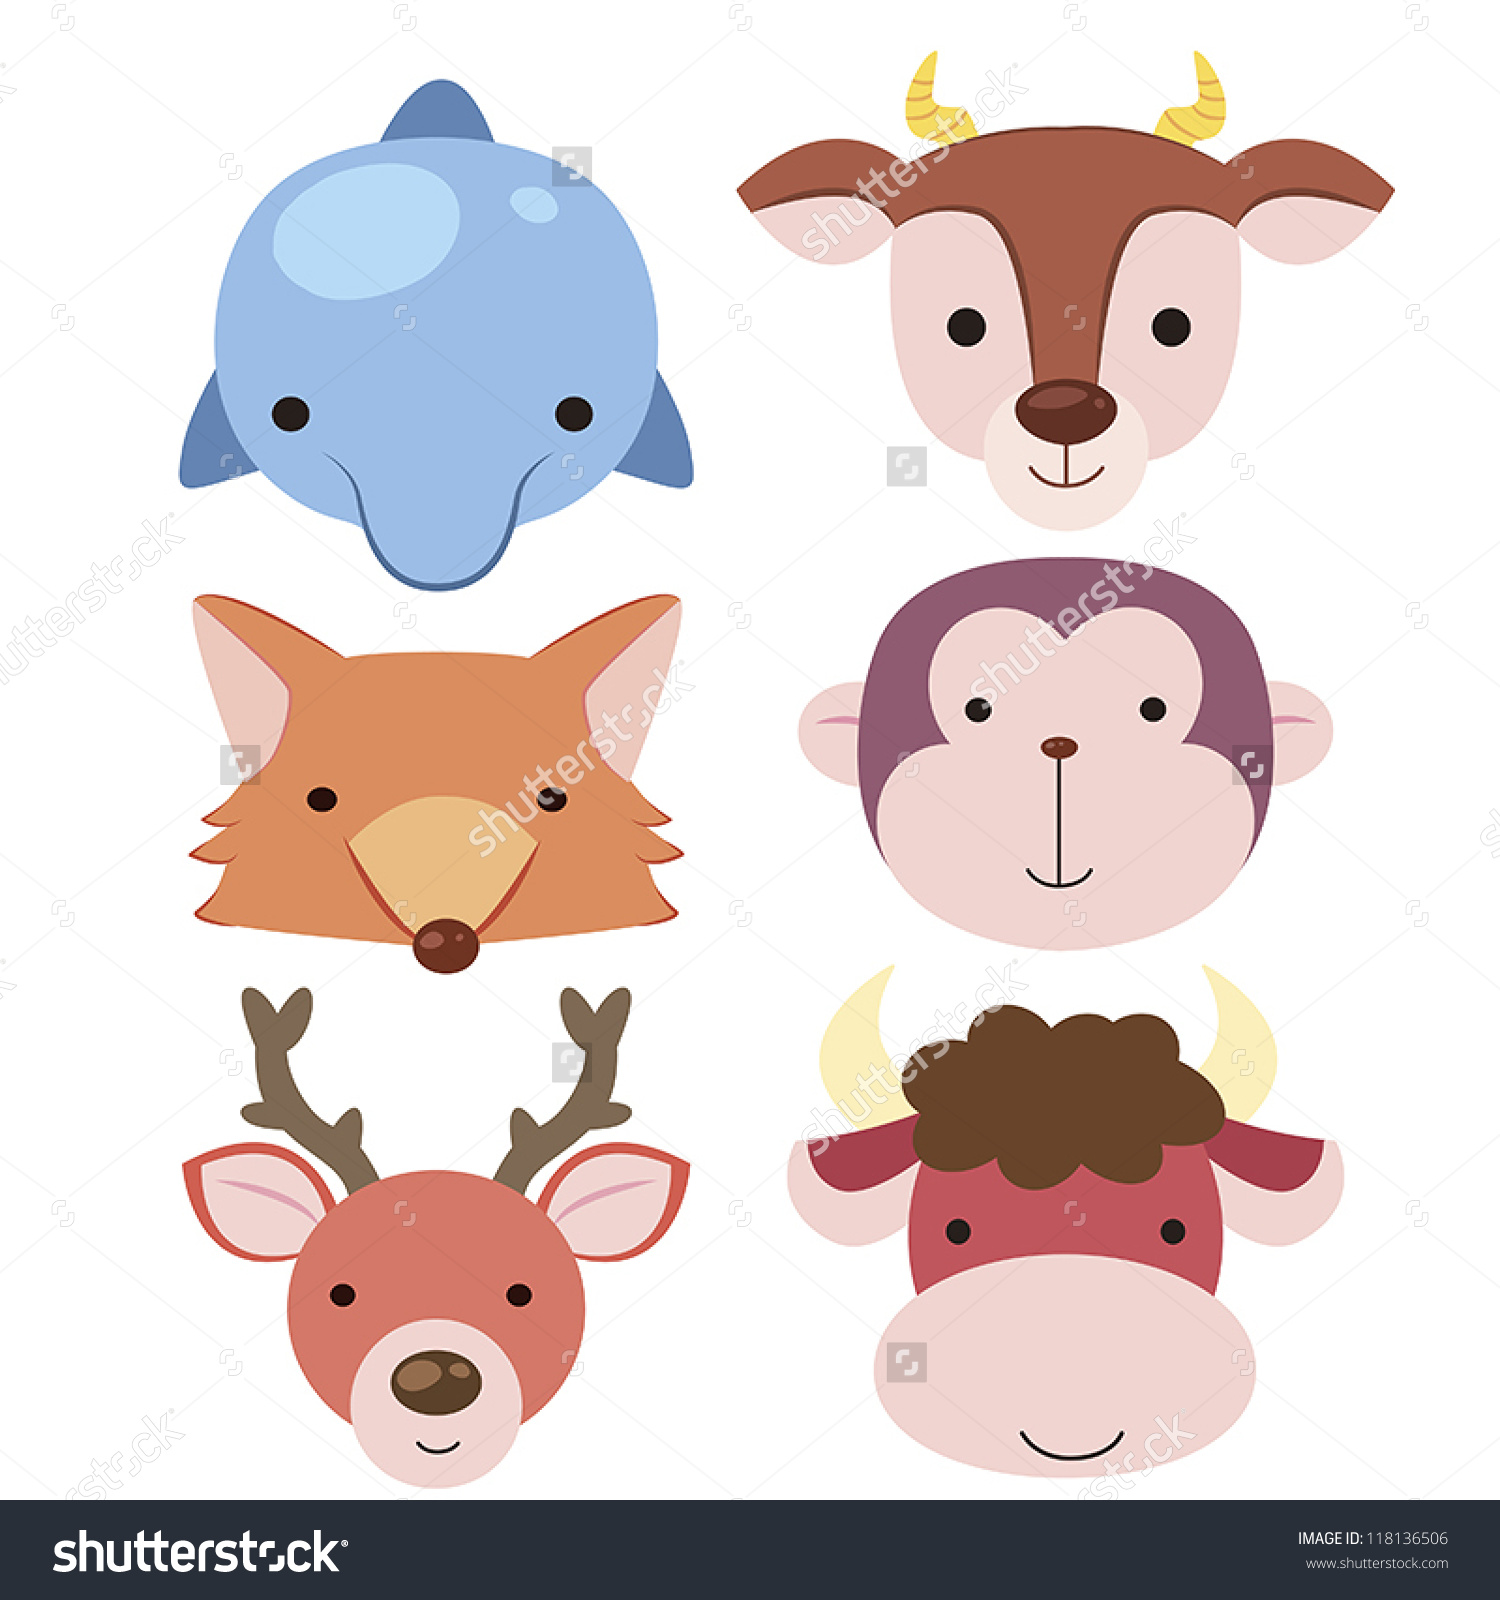 Cute animated animals buddy icons